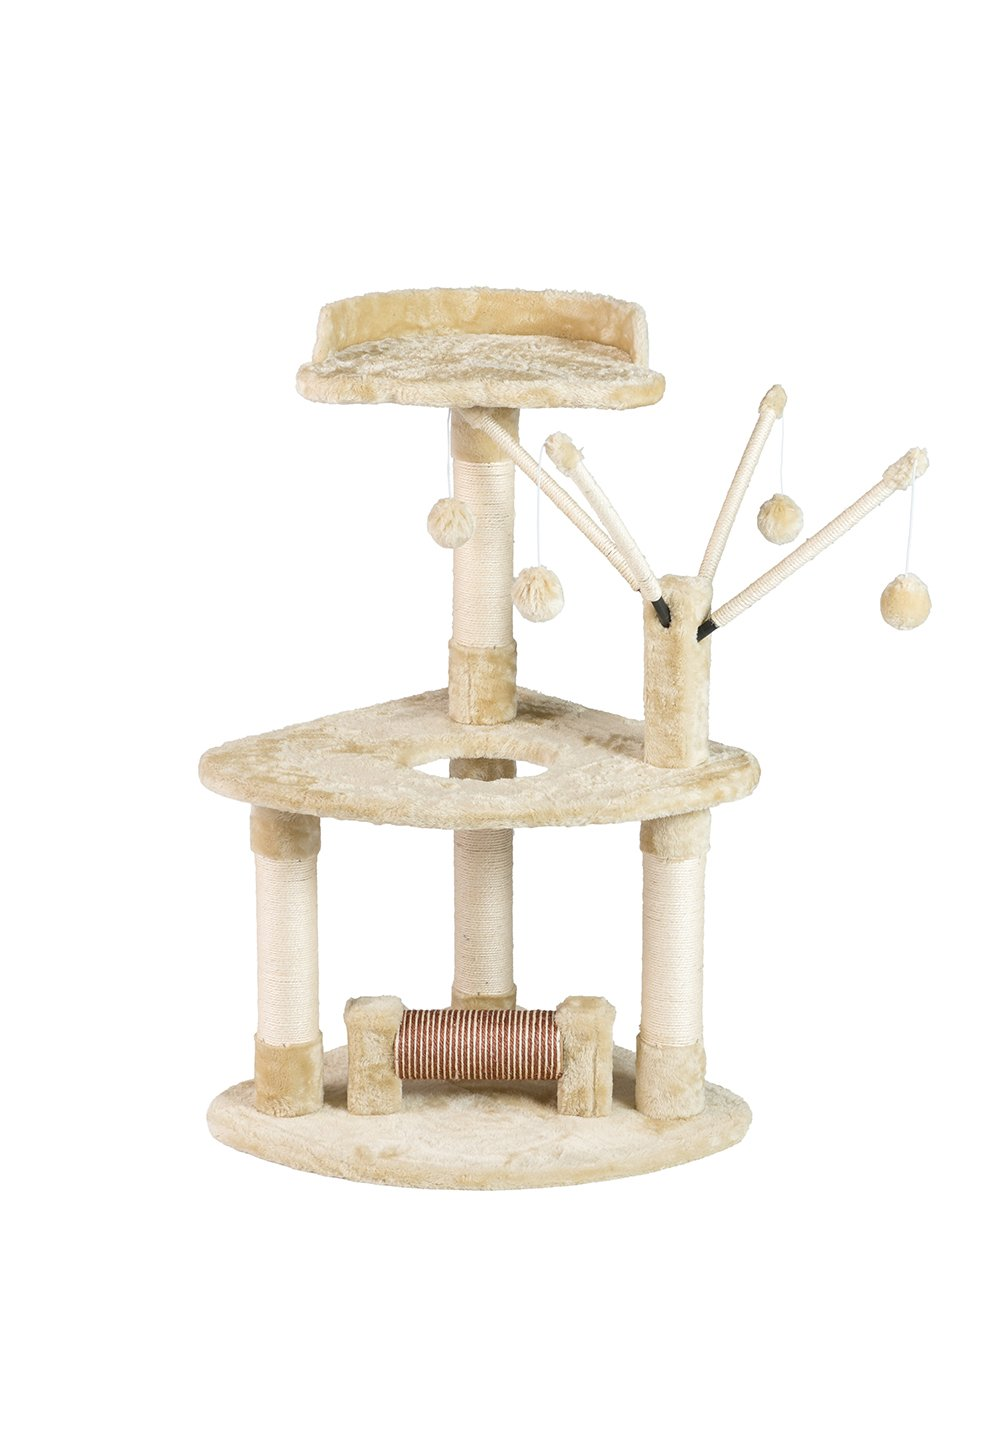 BuyHive Cat Tree Activity Play House Kitten Condo Perch Scratching Post w/Dangling Toy